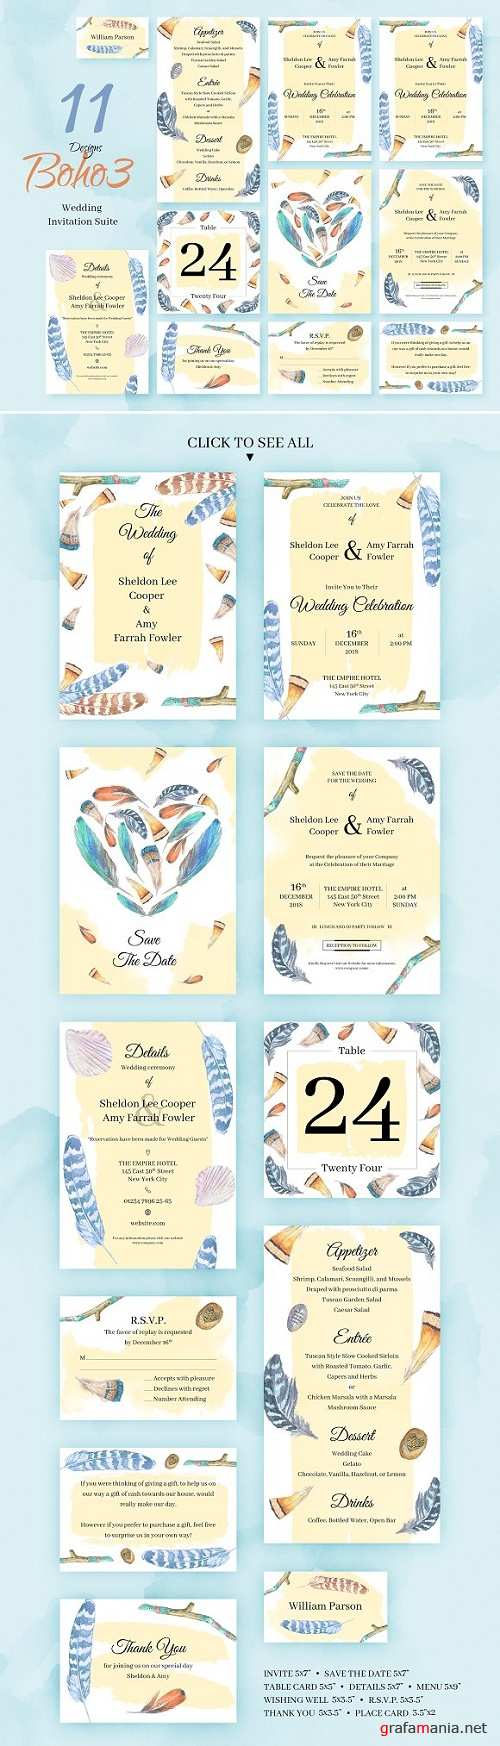 Boho3. Wedding Invitation Package 2336782